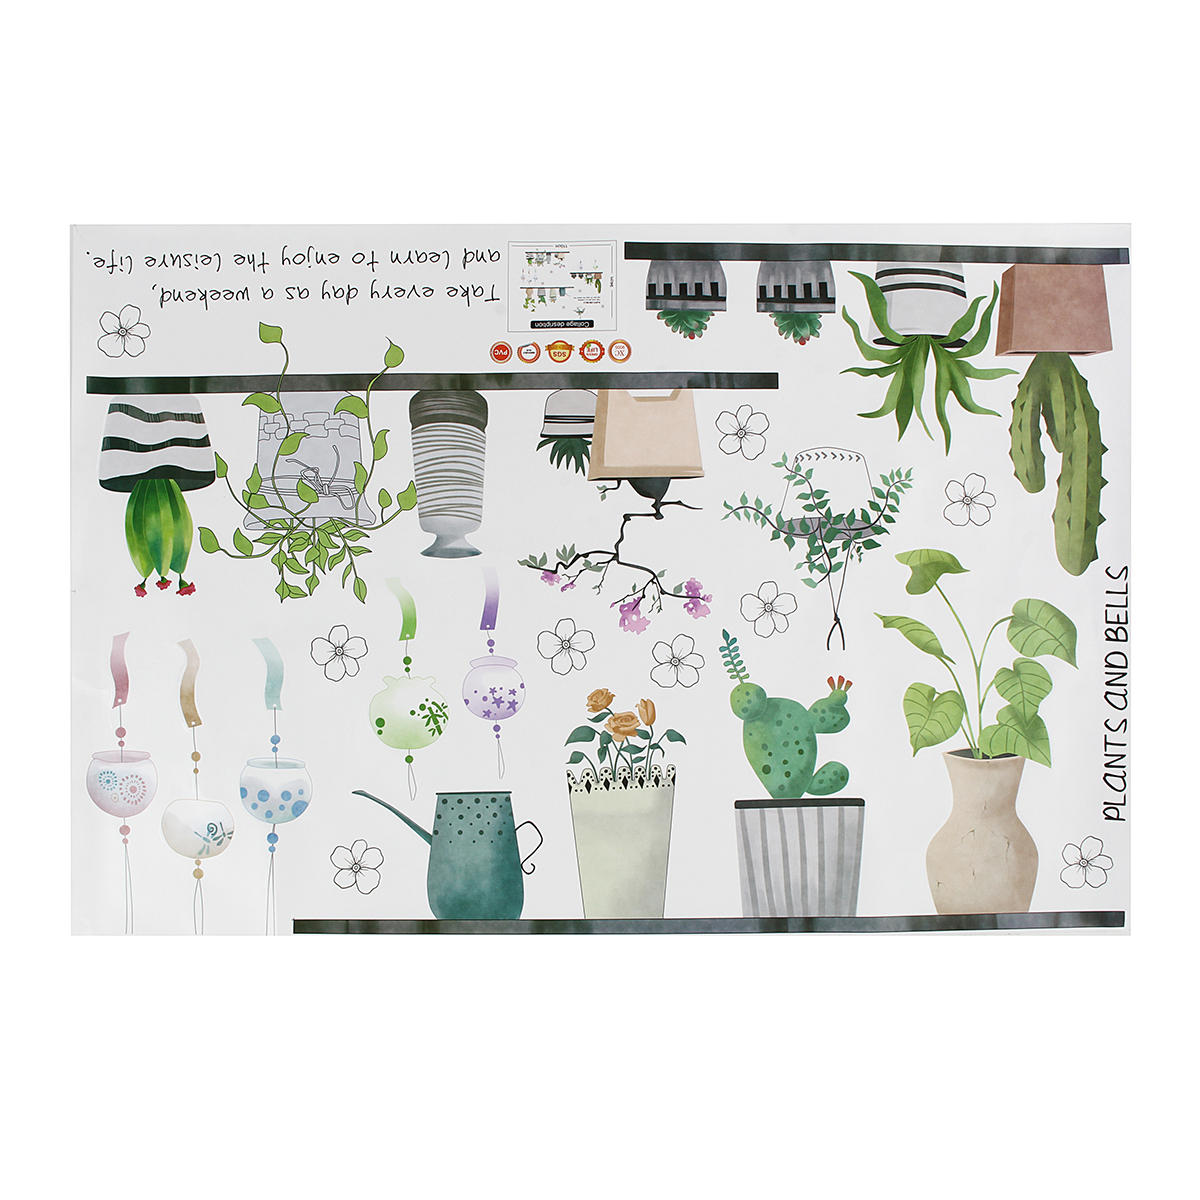 DIY Creative Potted Plant Cactus Wall Sticker Cute Art Vinyl Decal Mural Home Bedroom Decor